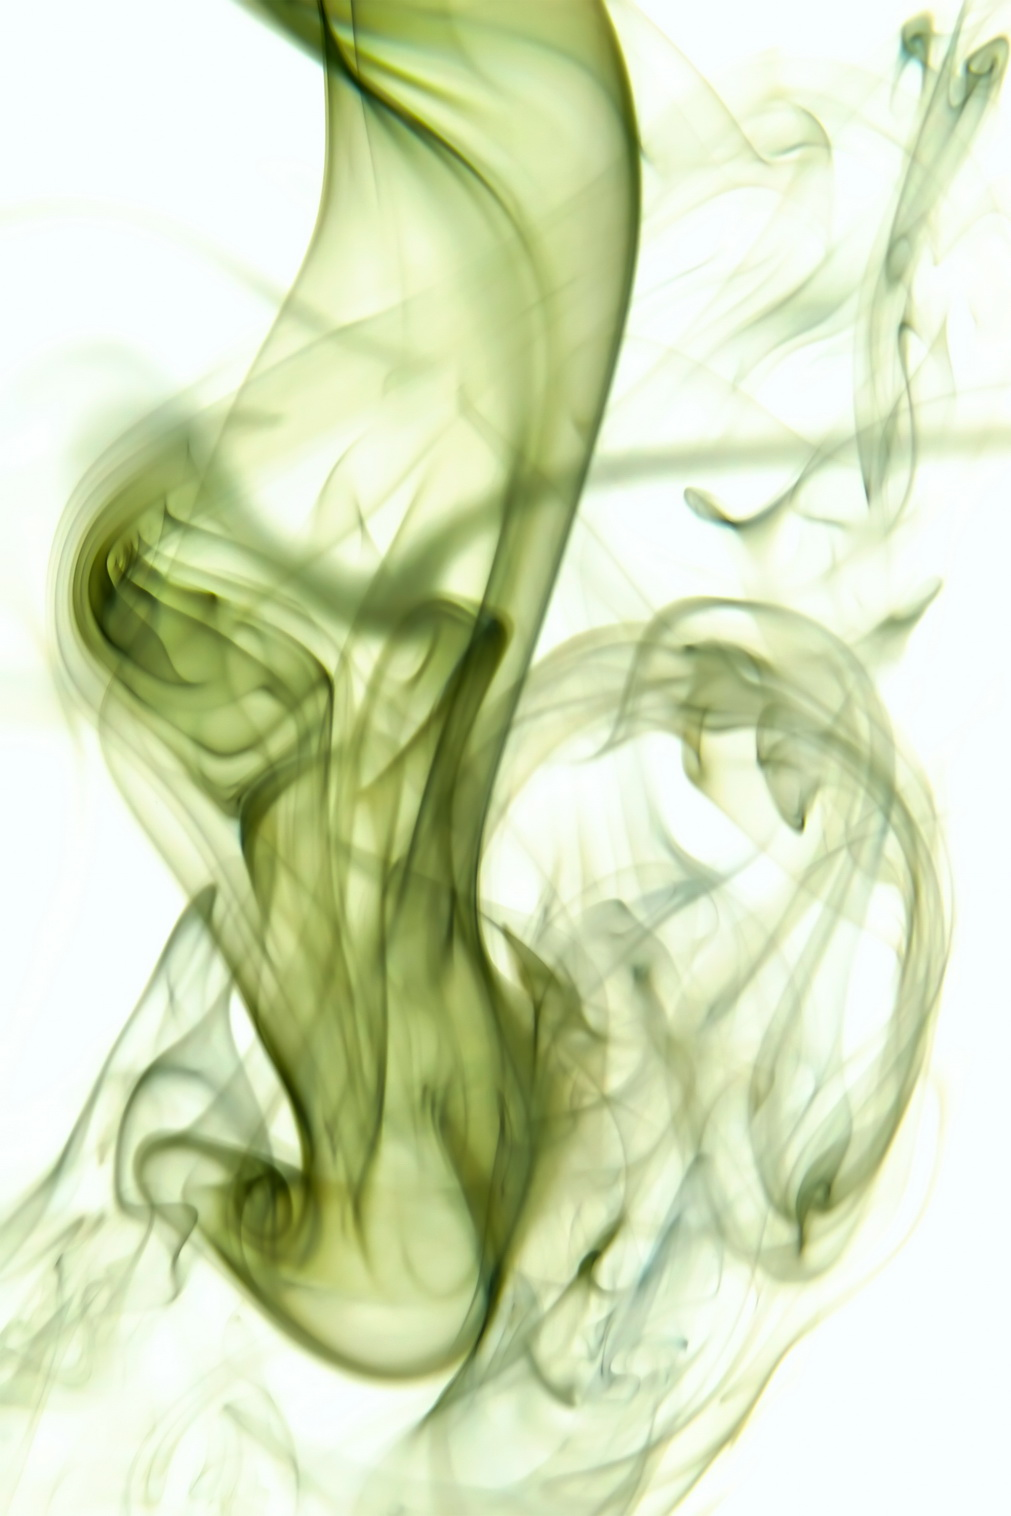 smoke, Abstract, Mystic, Wave, Trail, HQ Photo